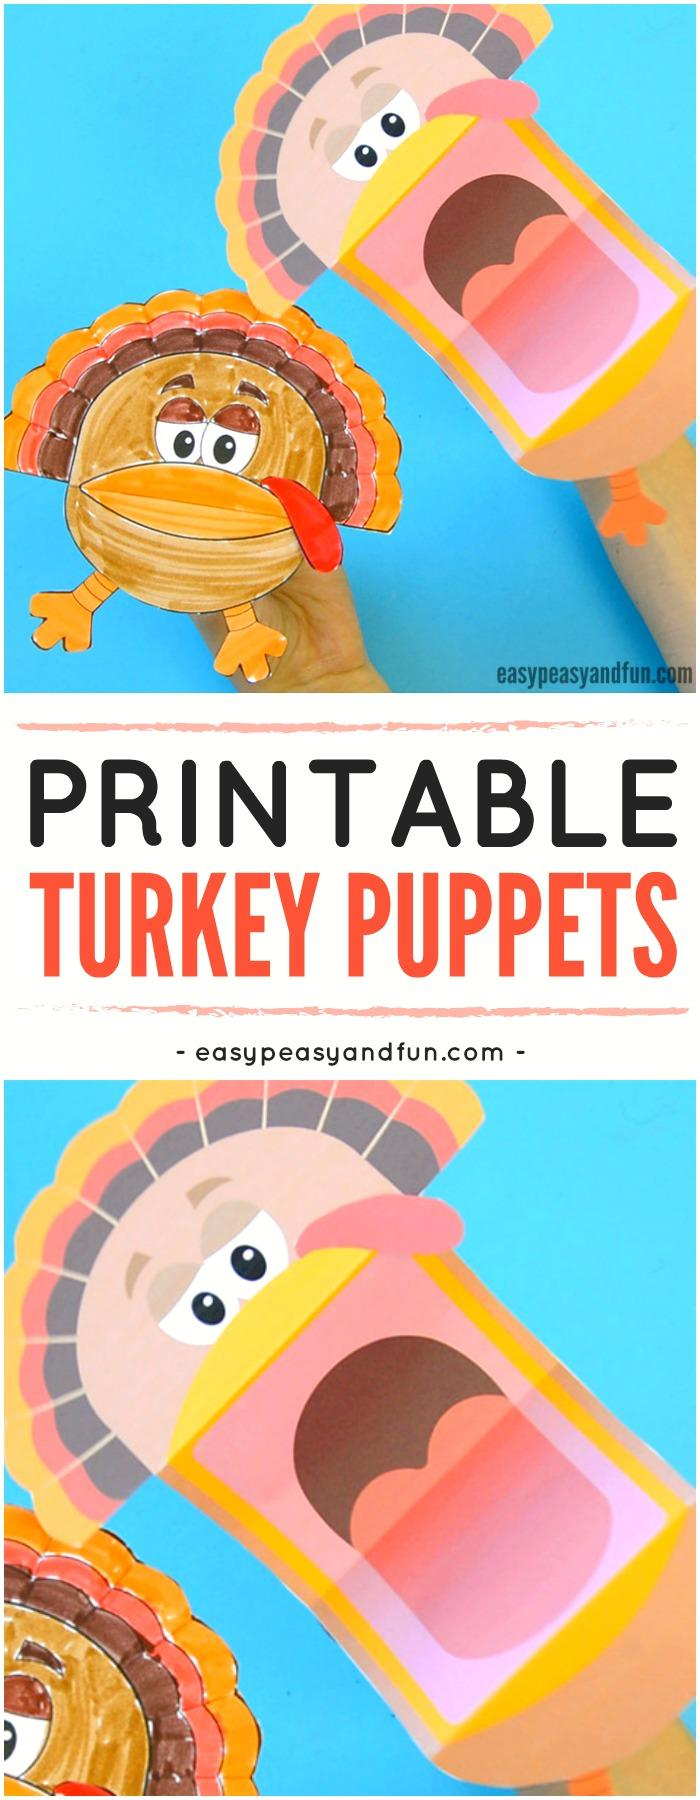 7 Printable Turkey Puppets